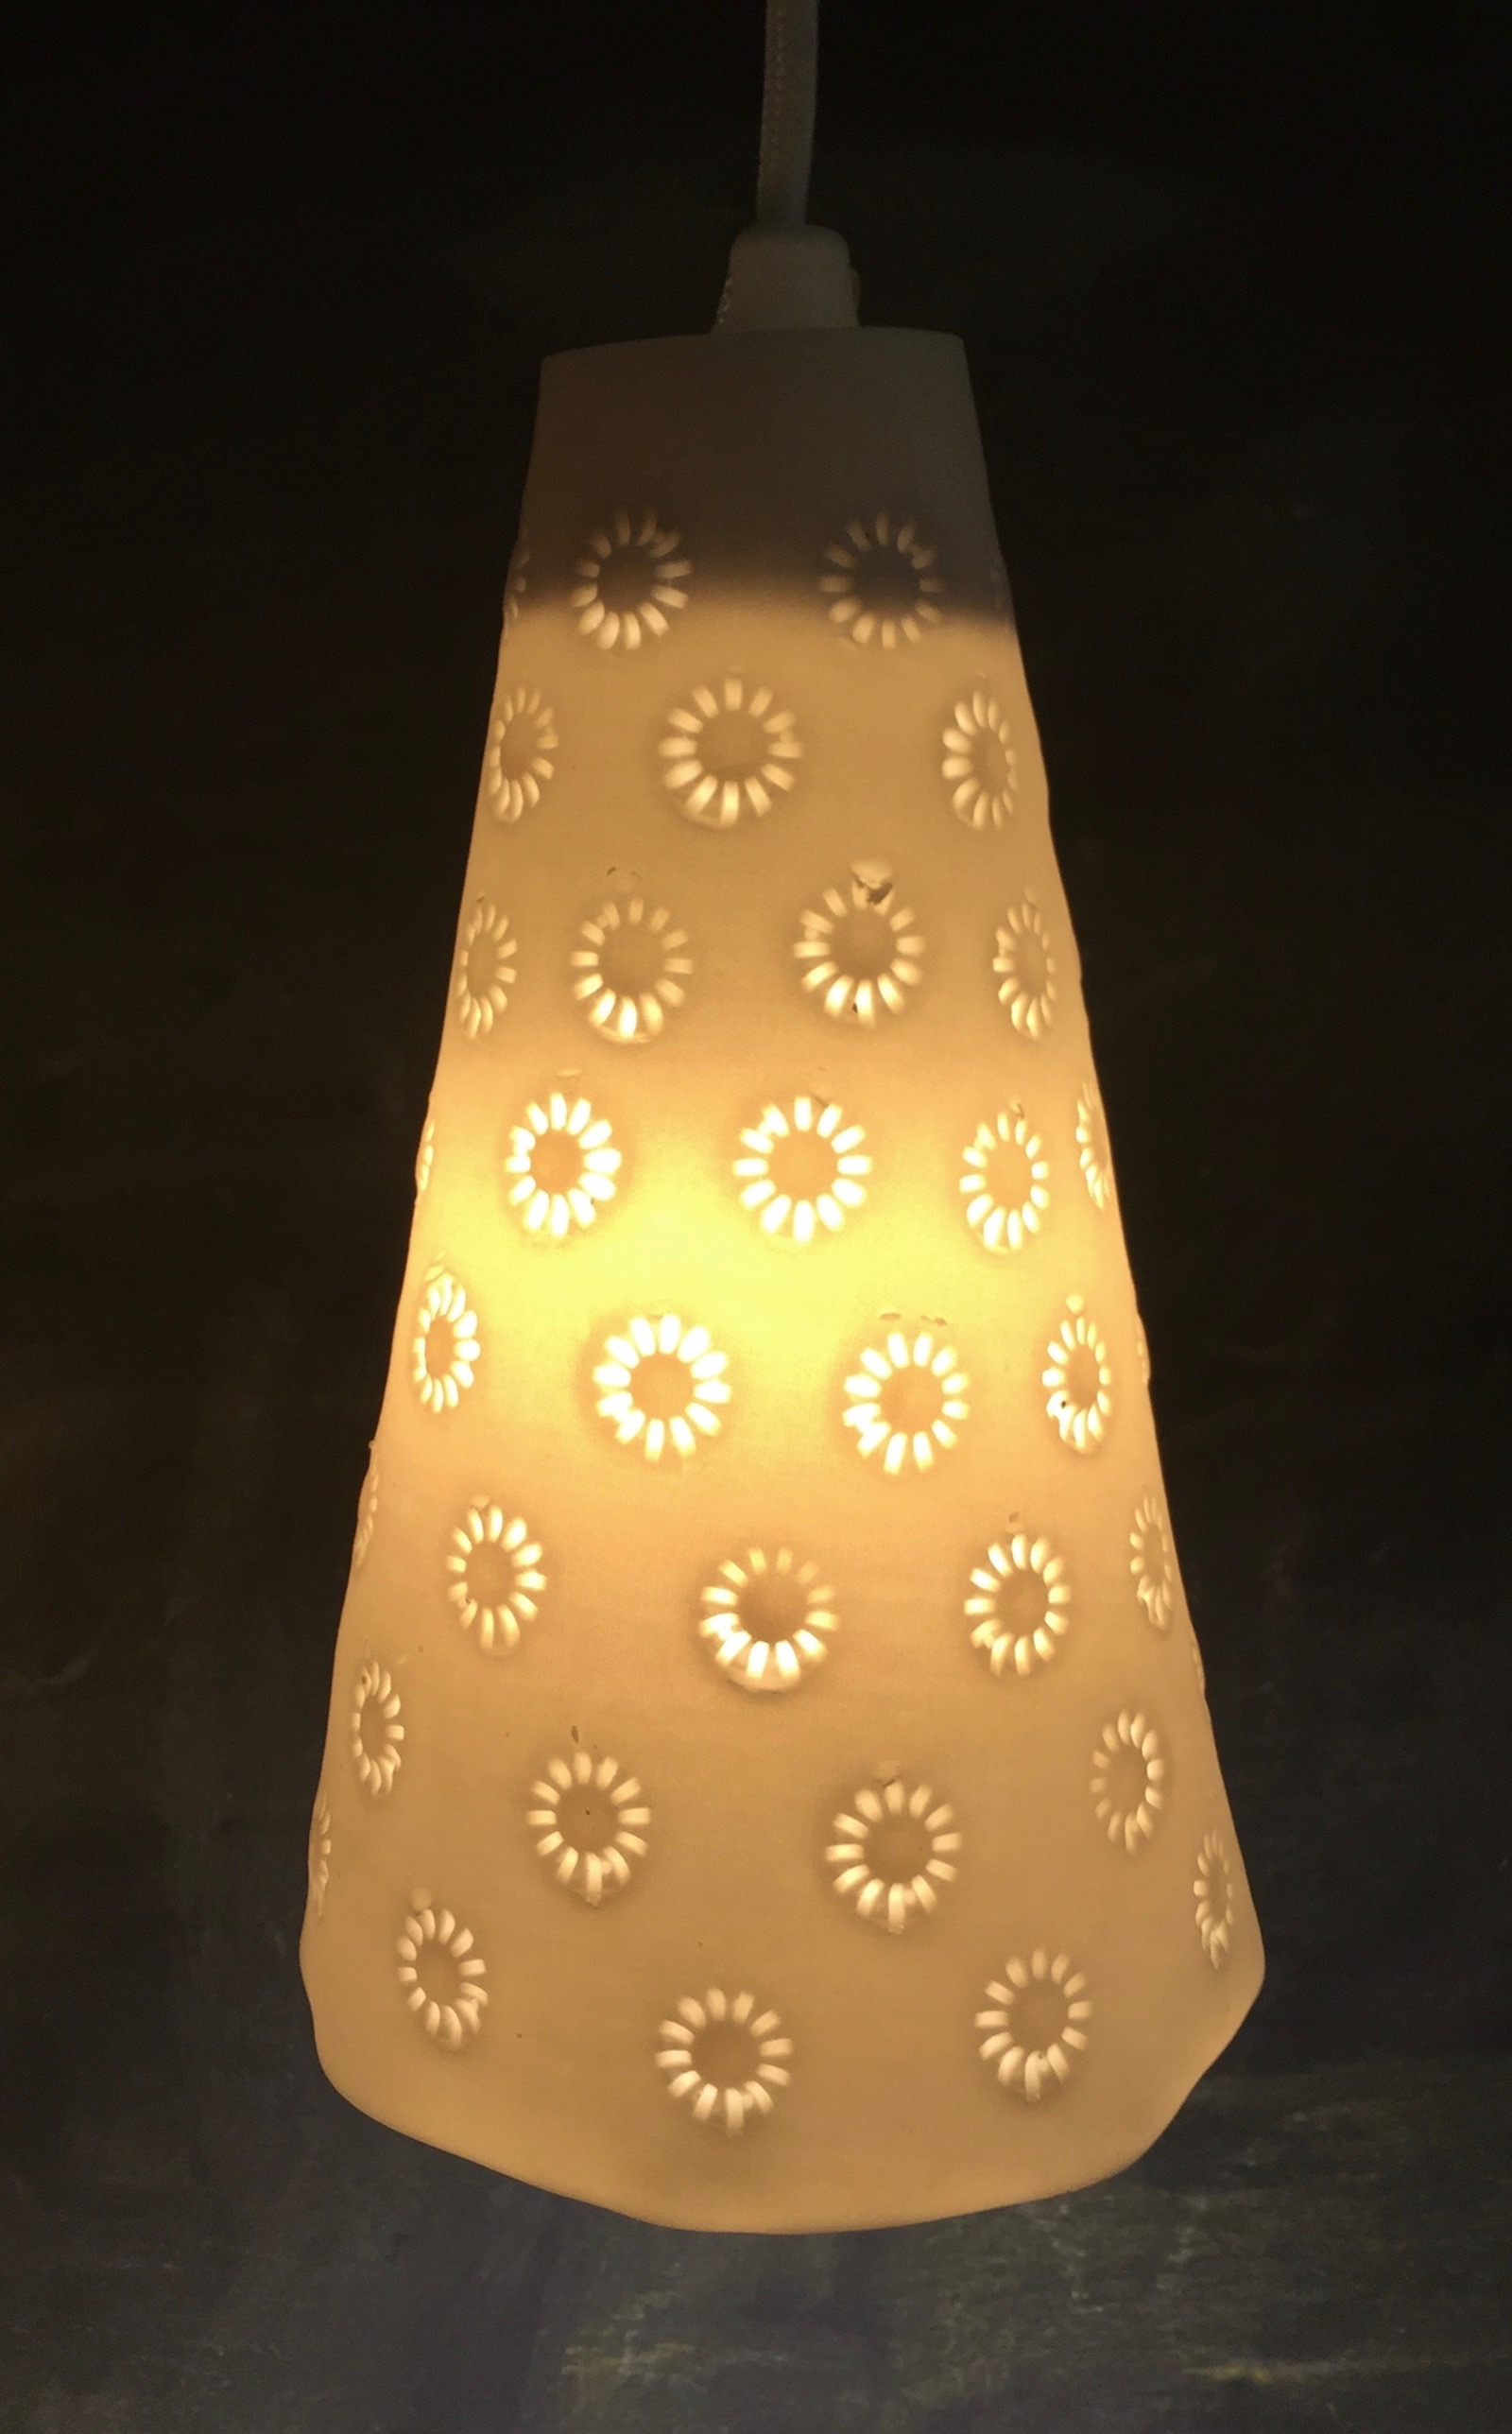 Cone shaped pendant light with daisy pattern